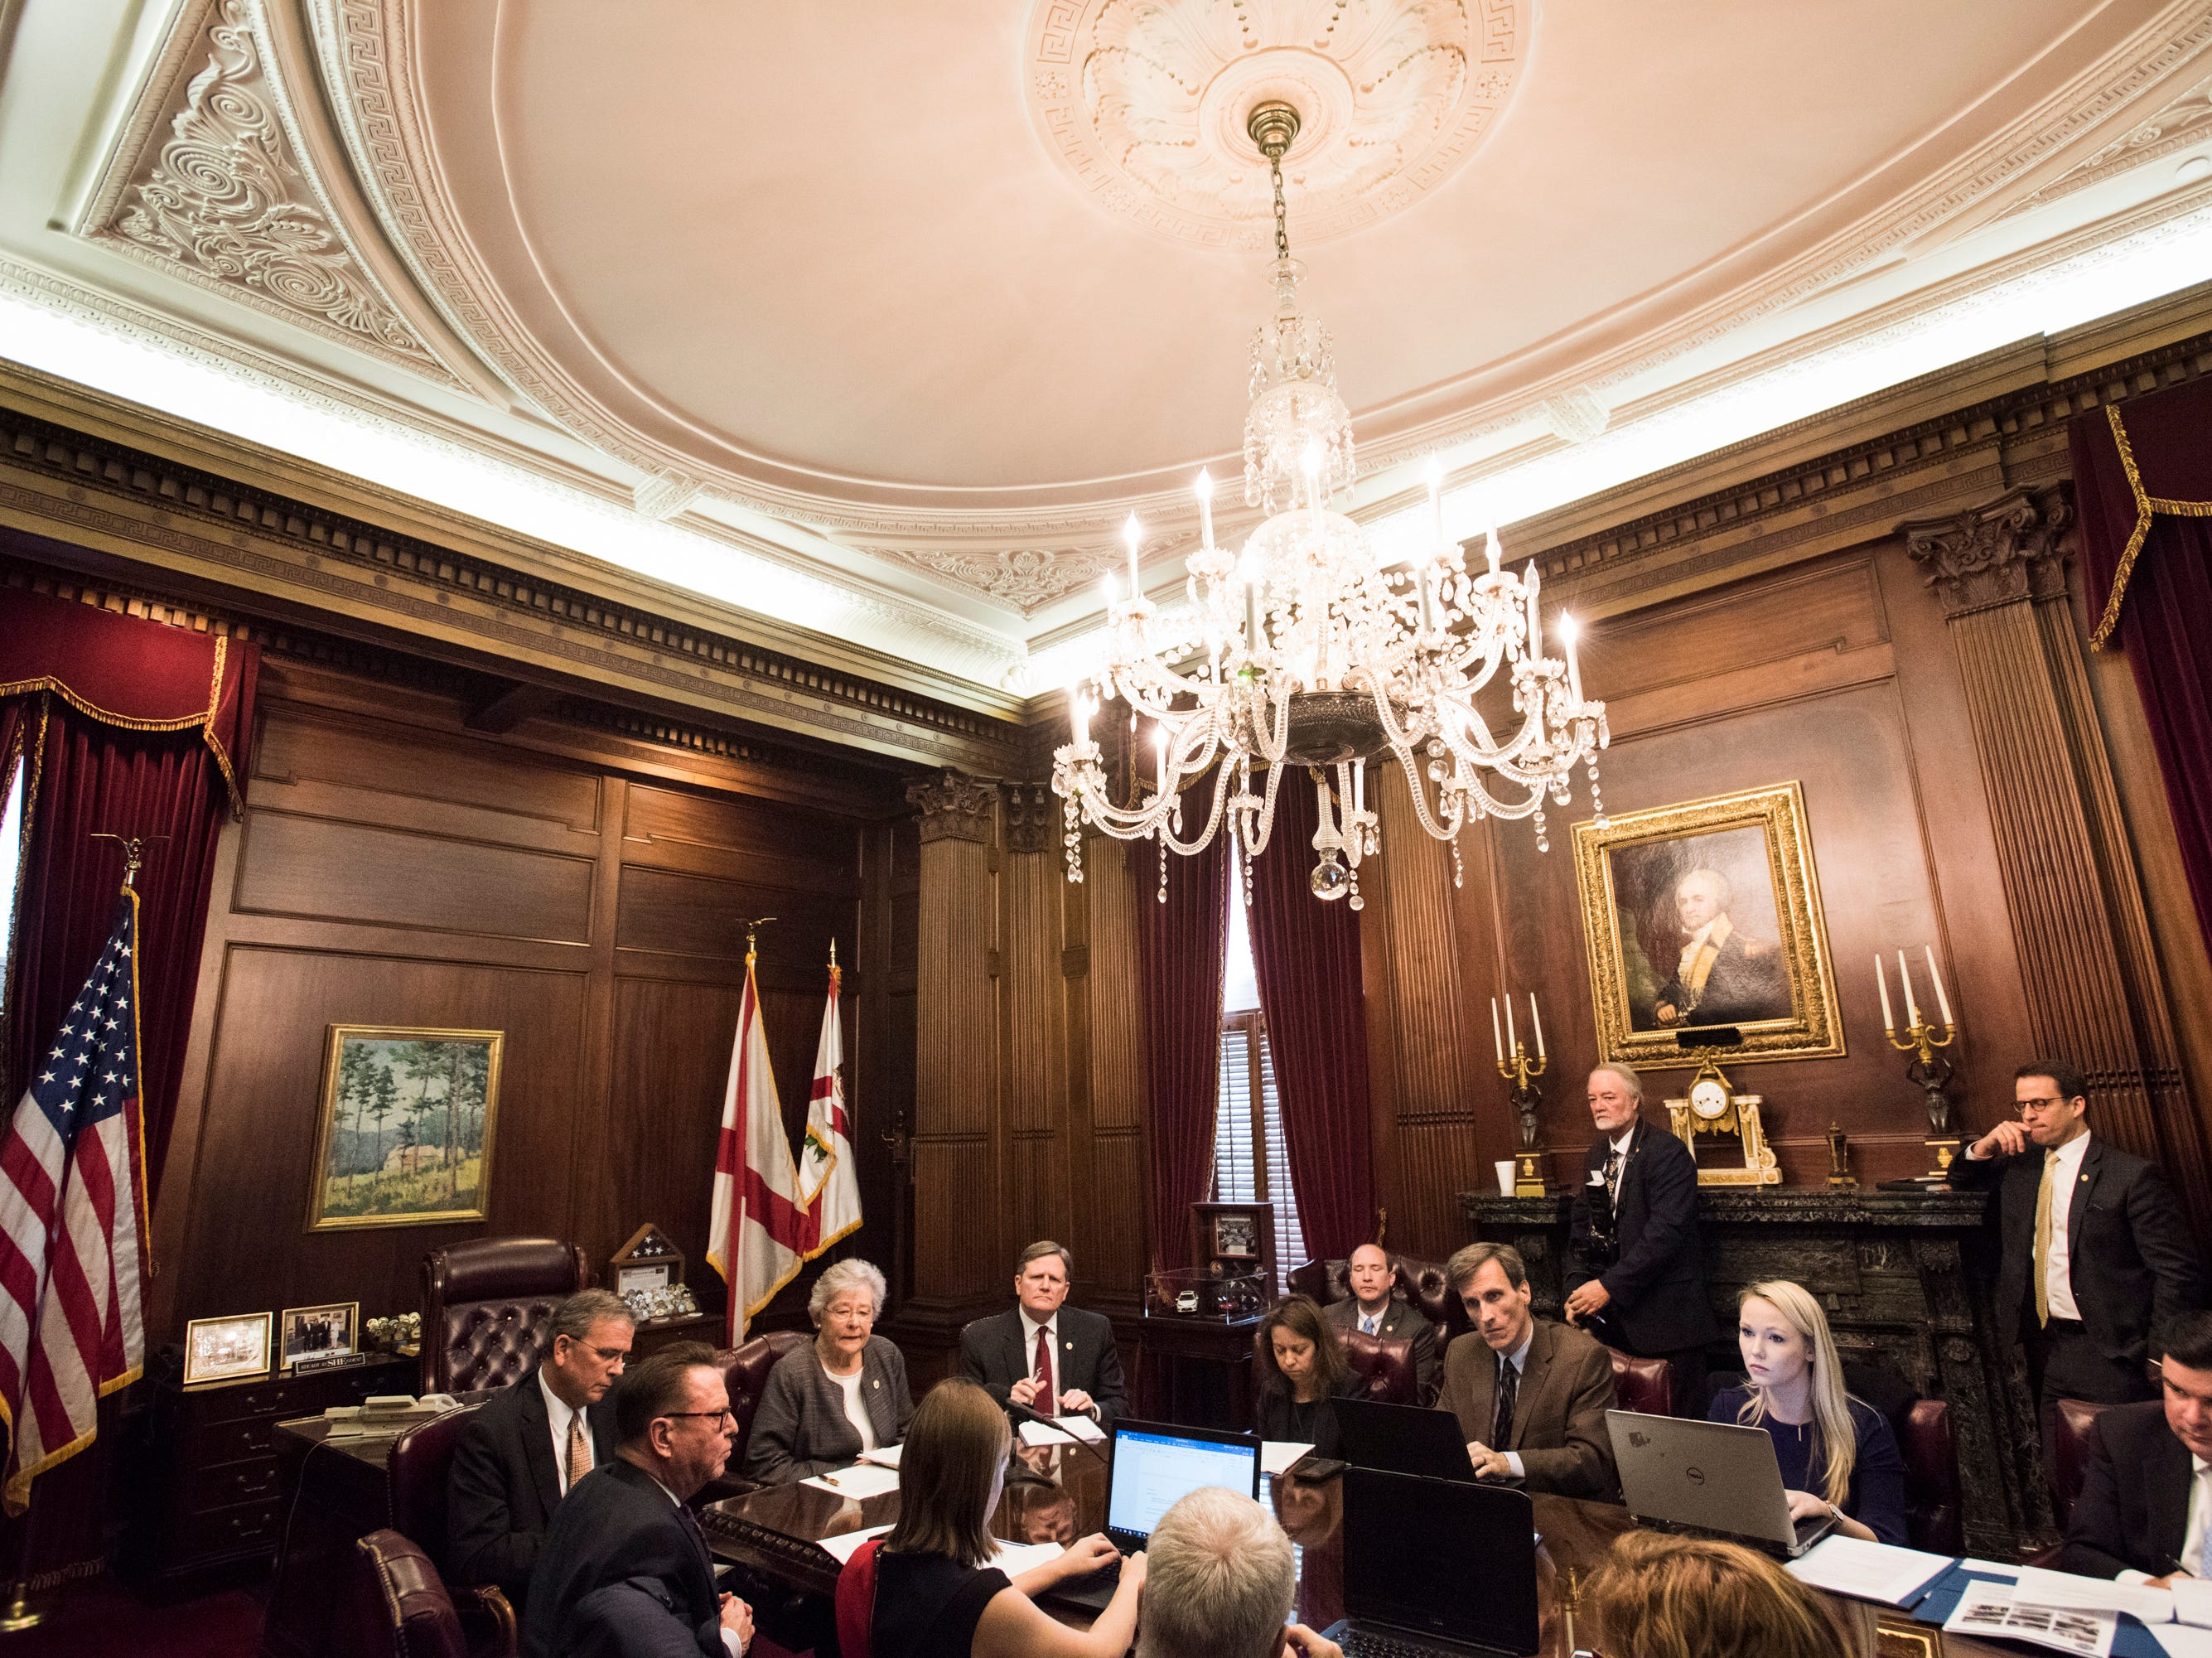 Gov. Kay Ivey takes questions during a press conference in the Governor's office at the Alabama State Capitol in Montgomery, Ala., on Tuesday, Feb. 12, 2019.